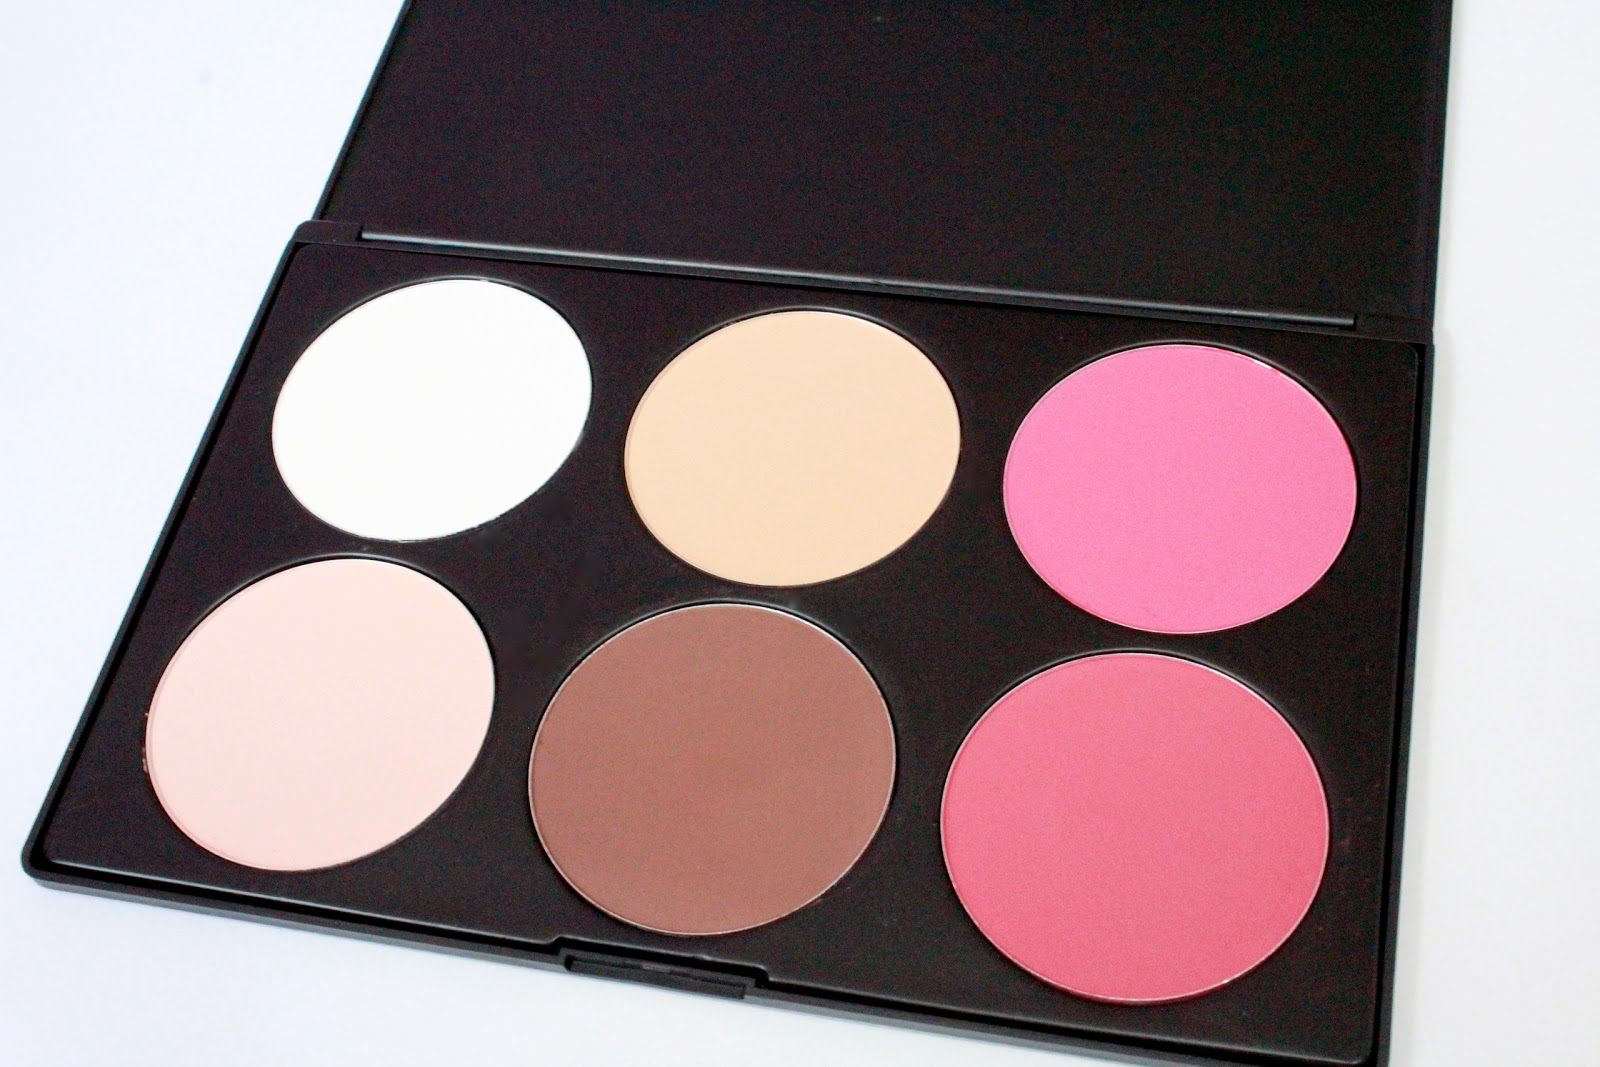 bh cosmetics cream contour palette review